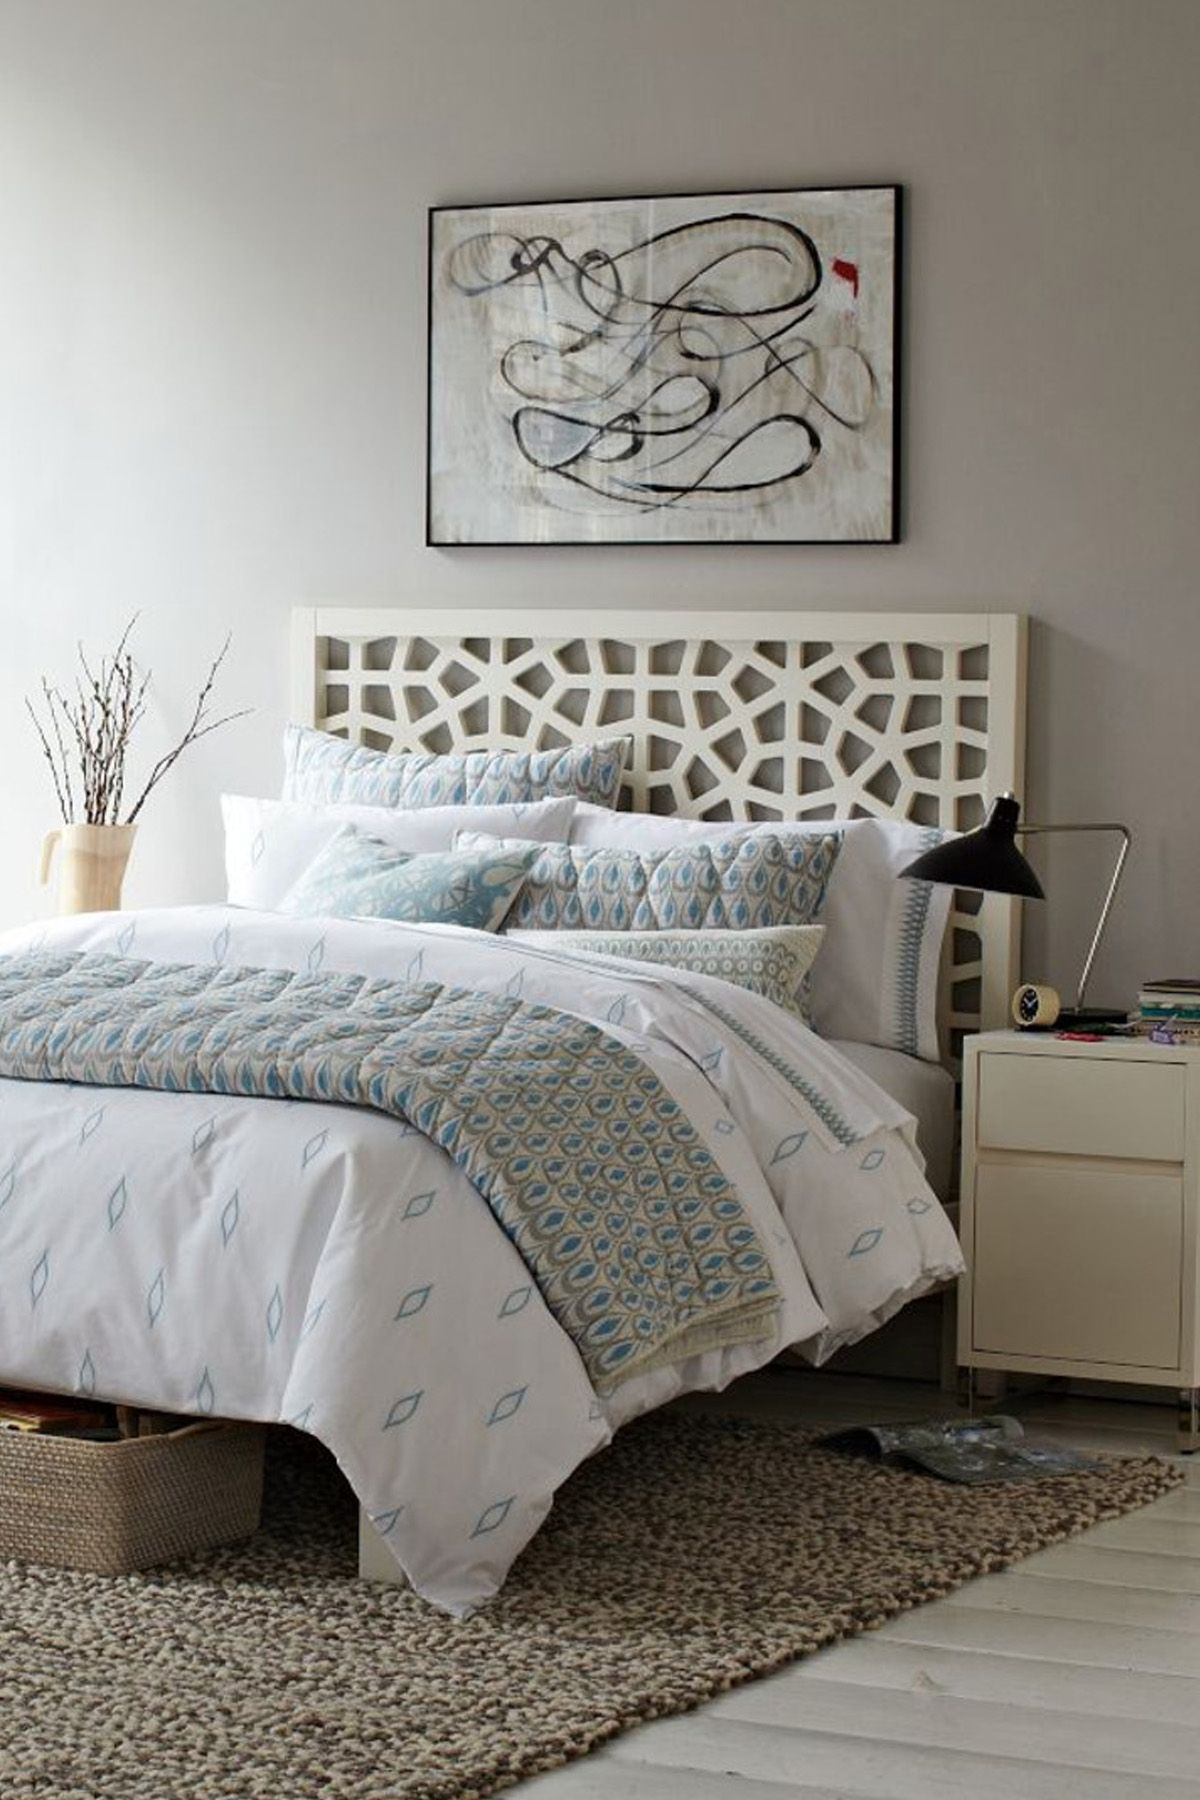 Bed Headboard 20 Best Headboard Ideas Unique Designs For Bed Headboards